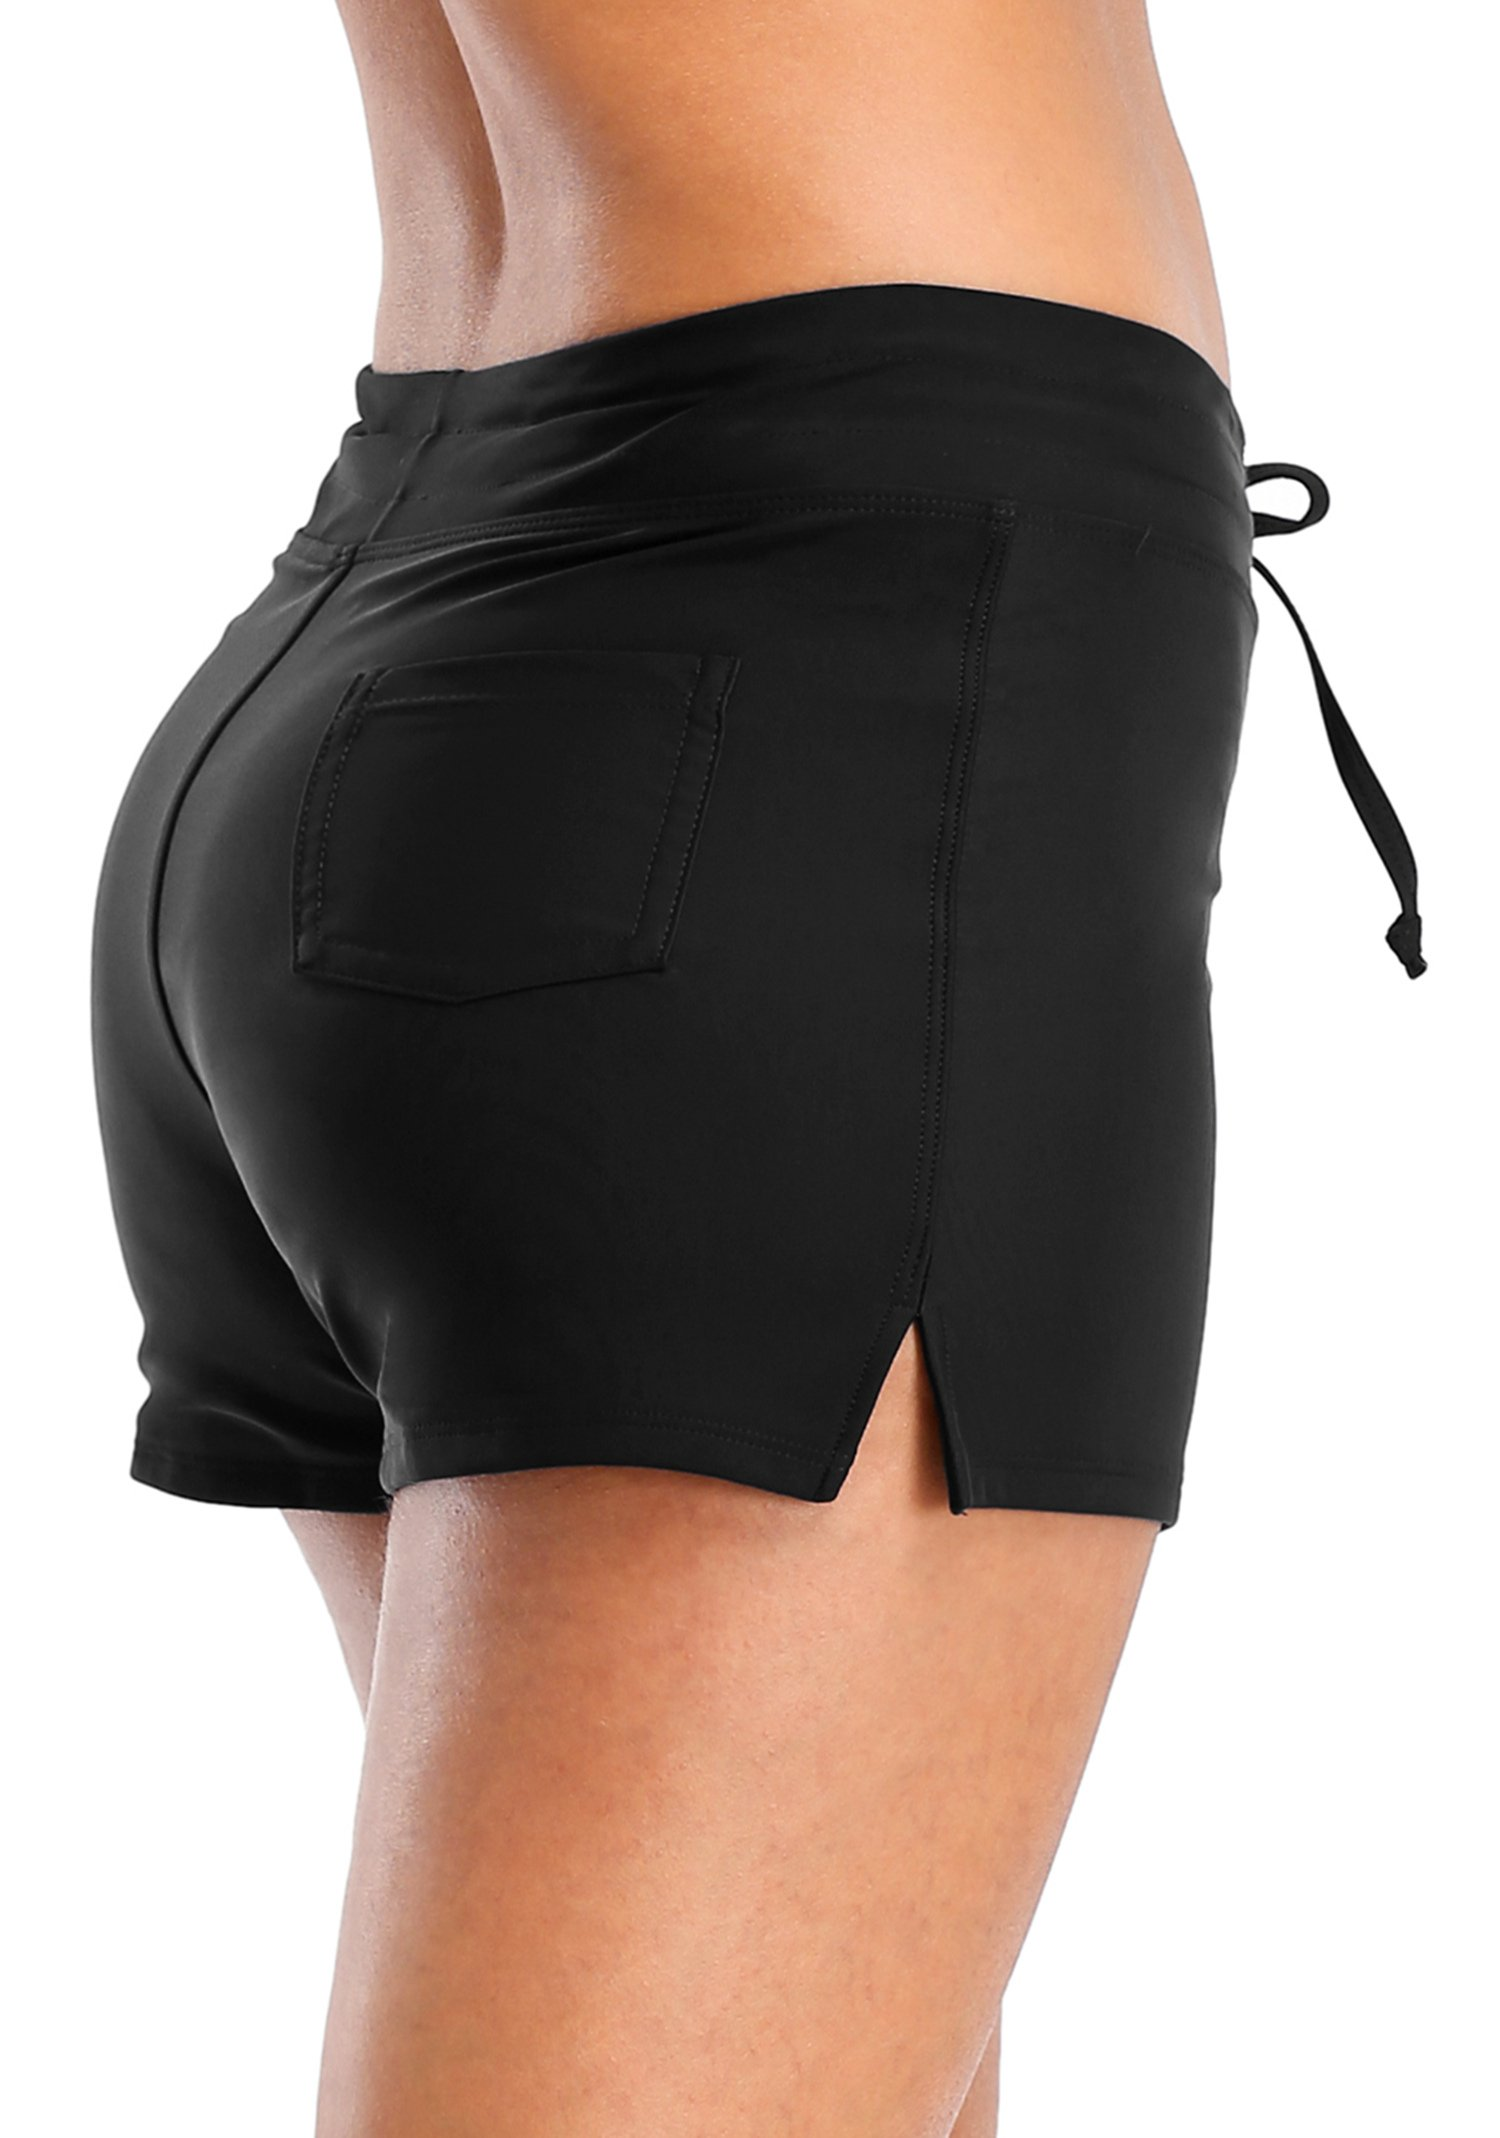 Vegatos Womens Solid Boardshorts Swimming Shorts Swim Bottoms Surfing Boyshorts Black by Vegatos (Image #6)